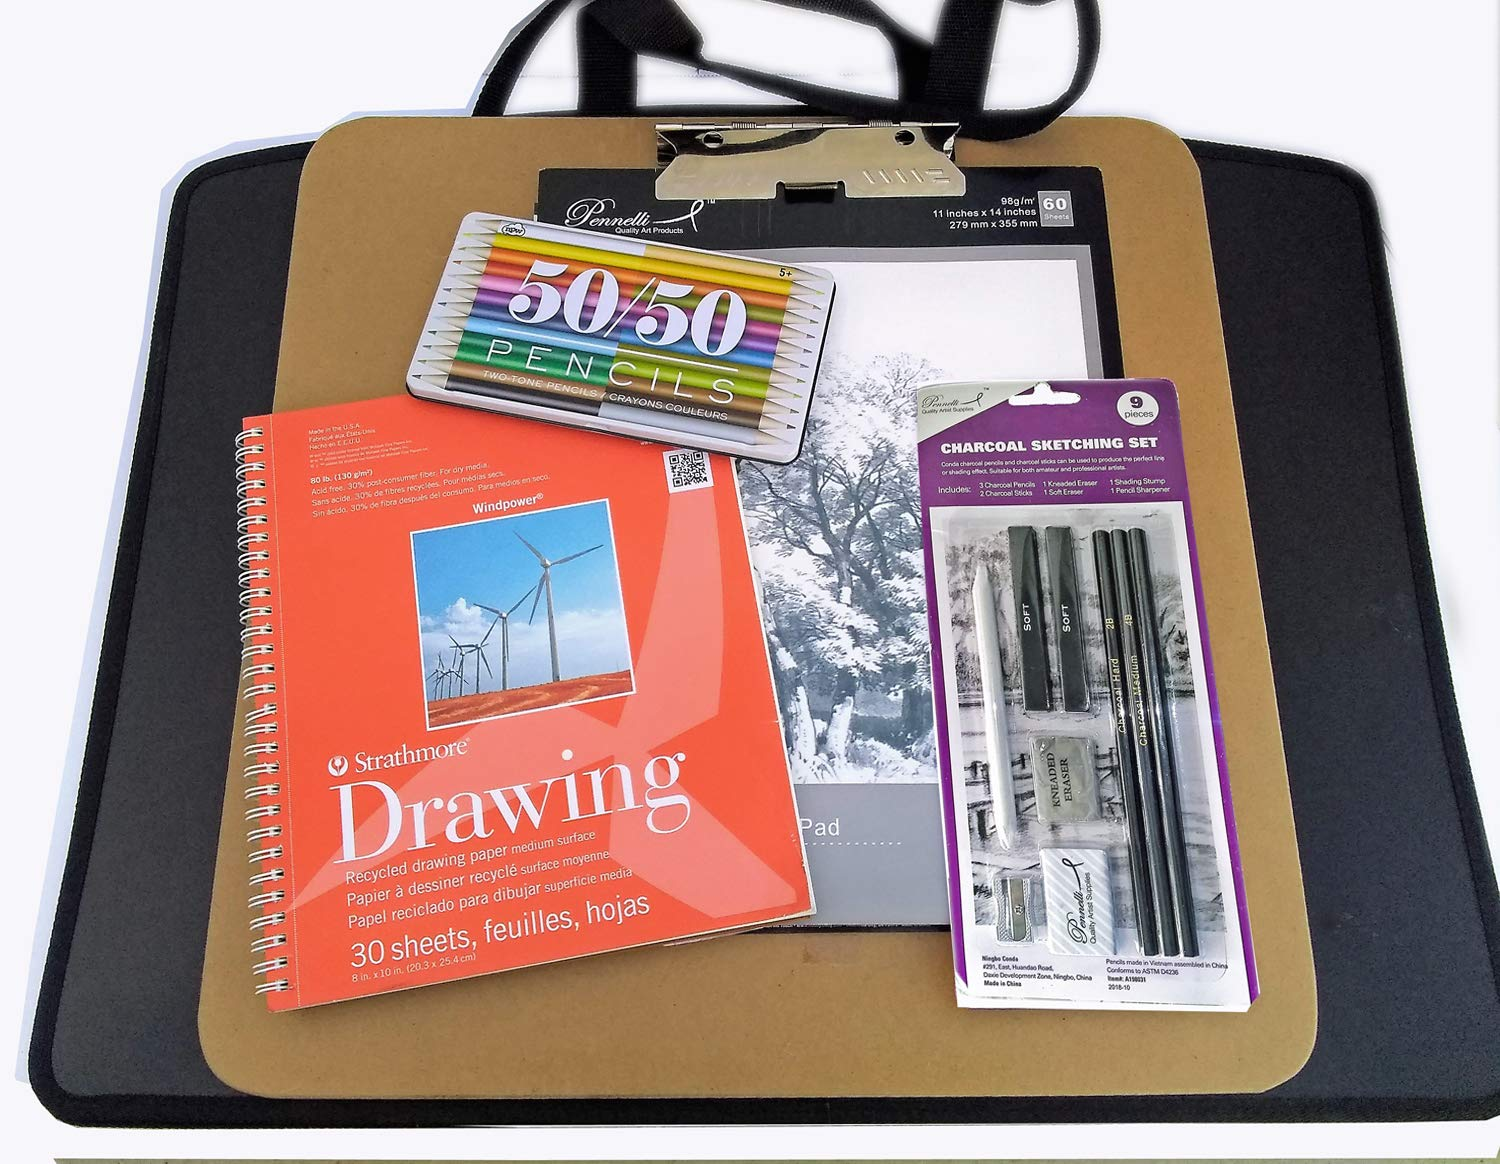 Artist Drawing Supplies Set w/Carry Board, Zipper Portfolio, Hardbound Sketchbook, Color Pencil Set, Graphite Pencil Set, Charcoal Drawing Set, Strathmore Pad, Large Sketch Pad, Instructions and More by Online Art Supplies